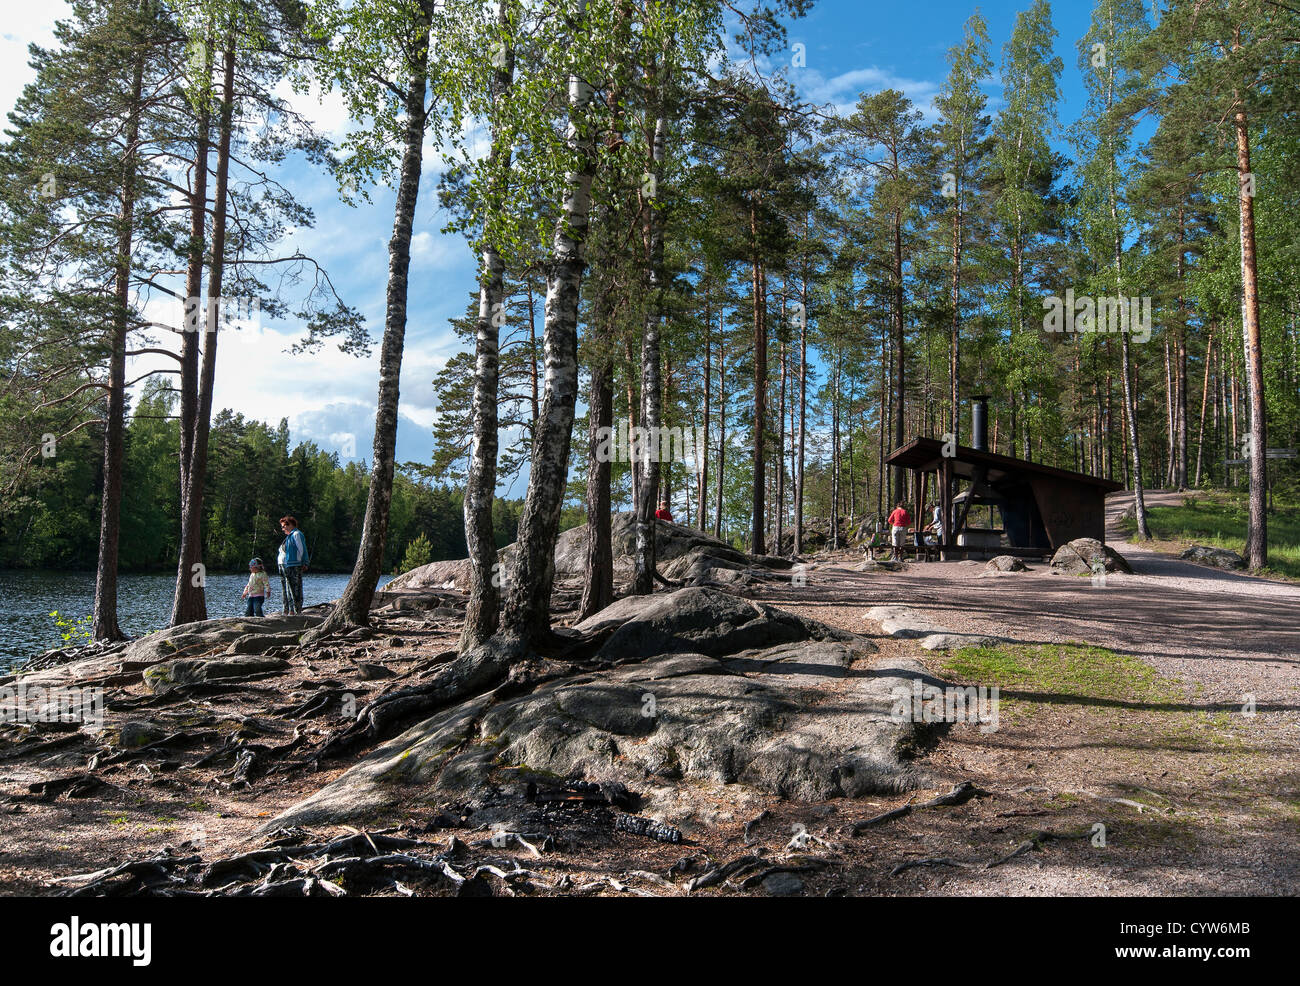 Barbecue area next to lake on the outskirts of Helsinki in Finland - Stock Image